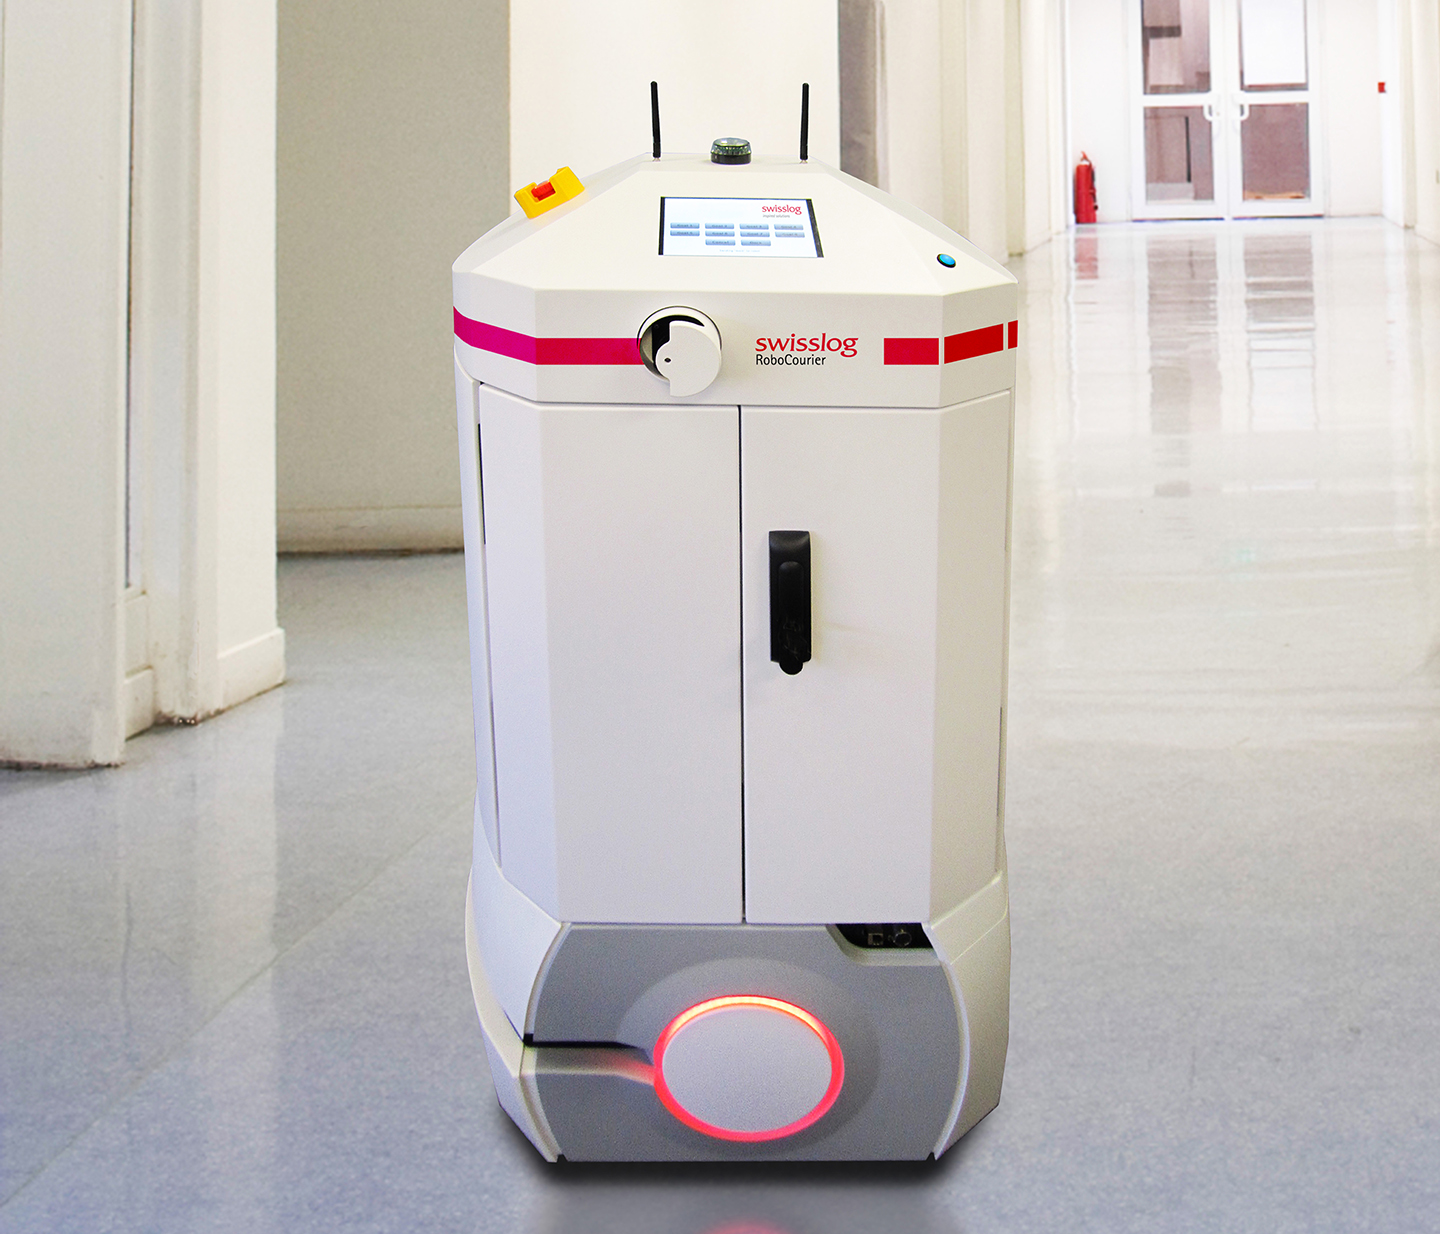 Swisslog Introduces Next Generation Robocourier